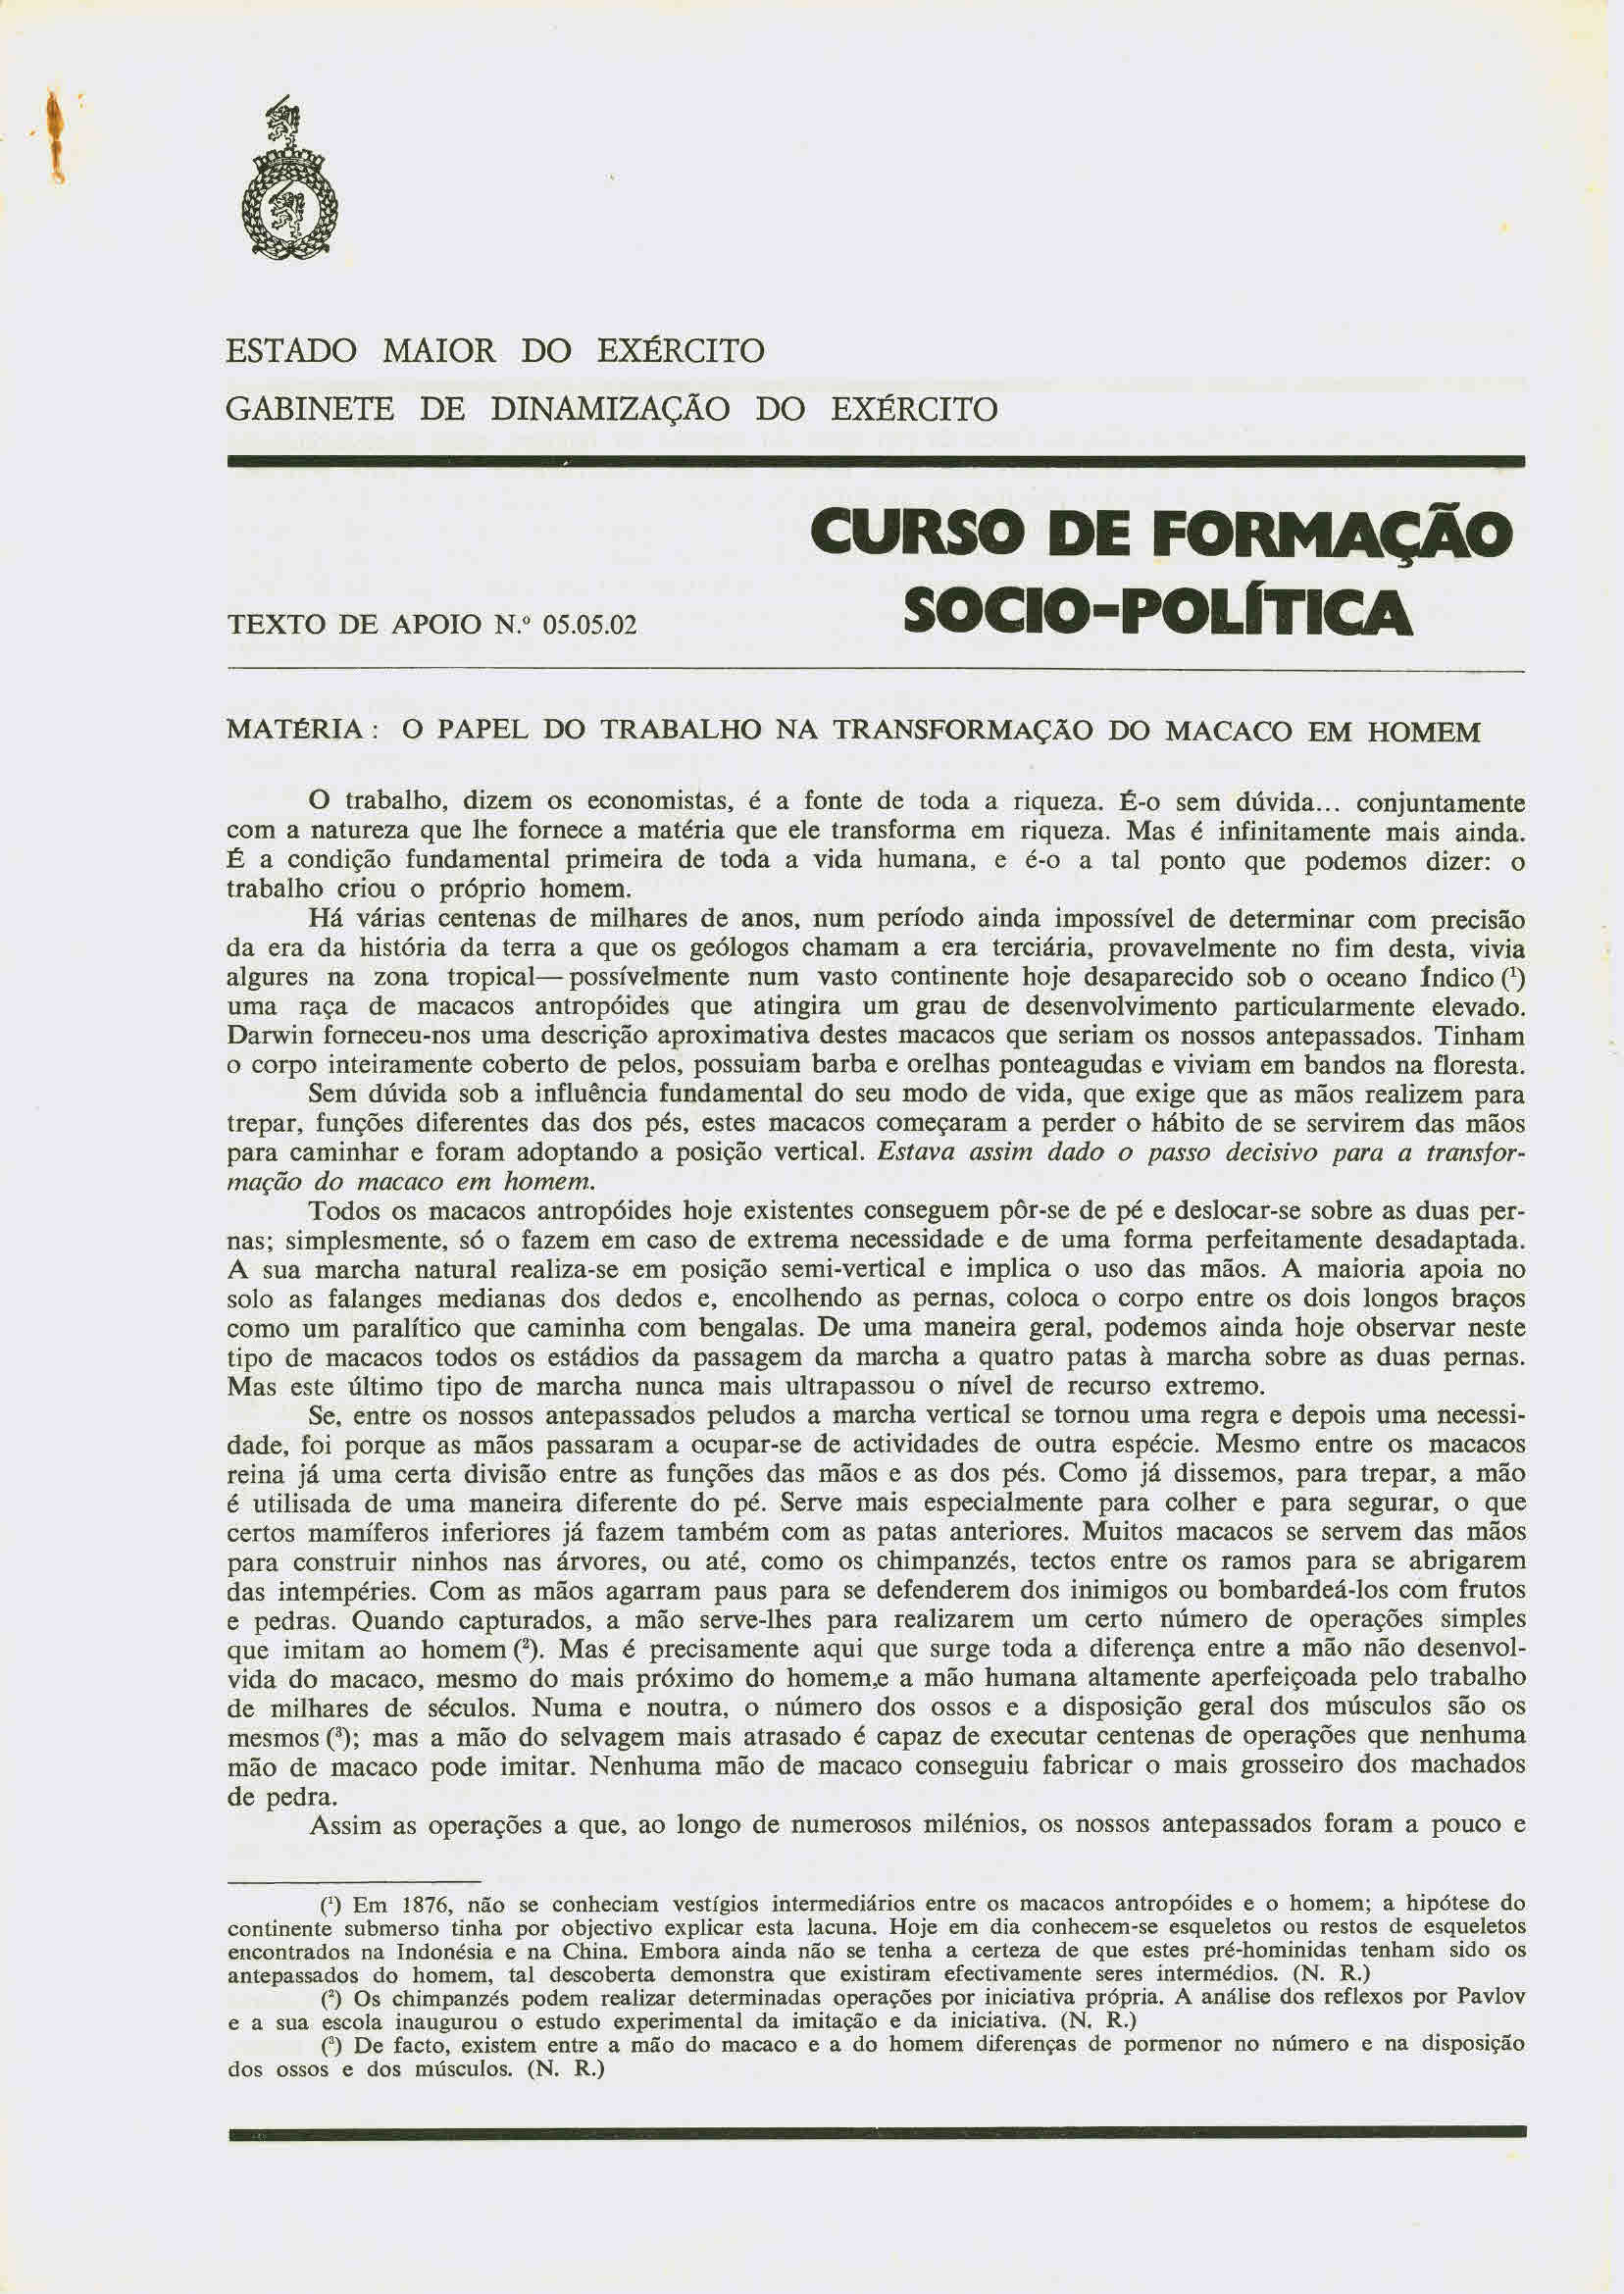 http://ephemerajpp.files.wordpress.com/2011/10/copy-of-o-papel-do-trabalho-na-transformac3a7c3a3o-do-macado-em-homem.jpg